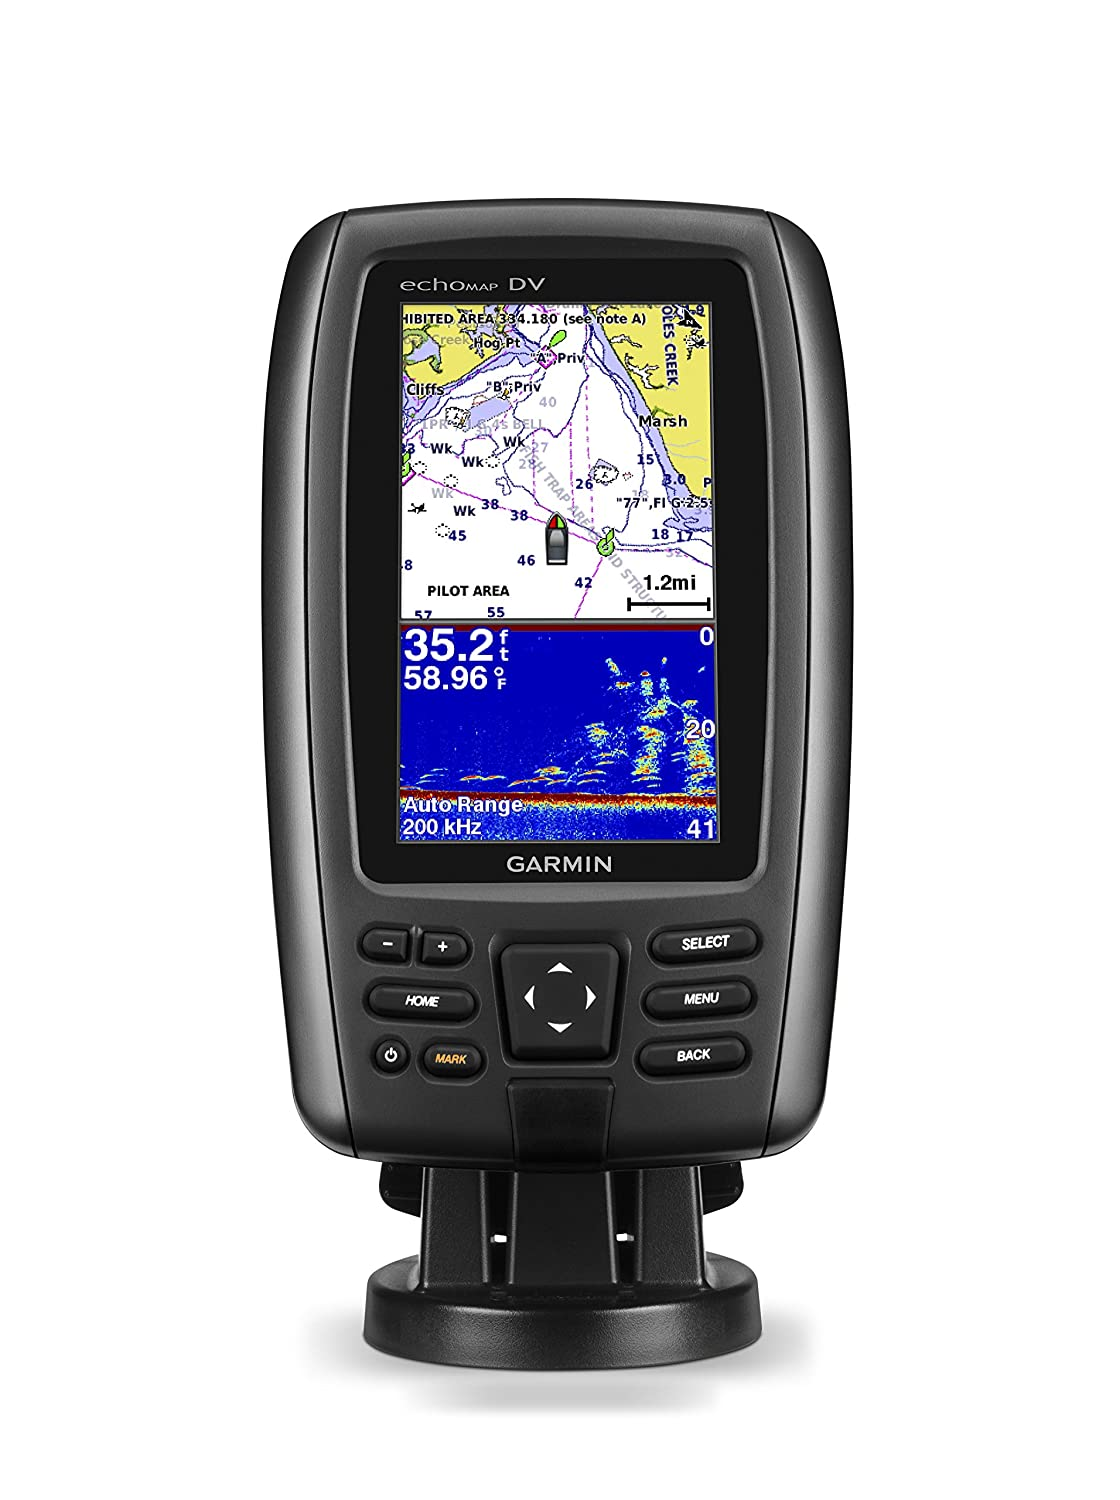 Garmin echoMAP CHIRP 44dv with transducer